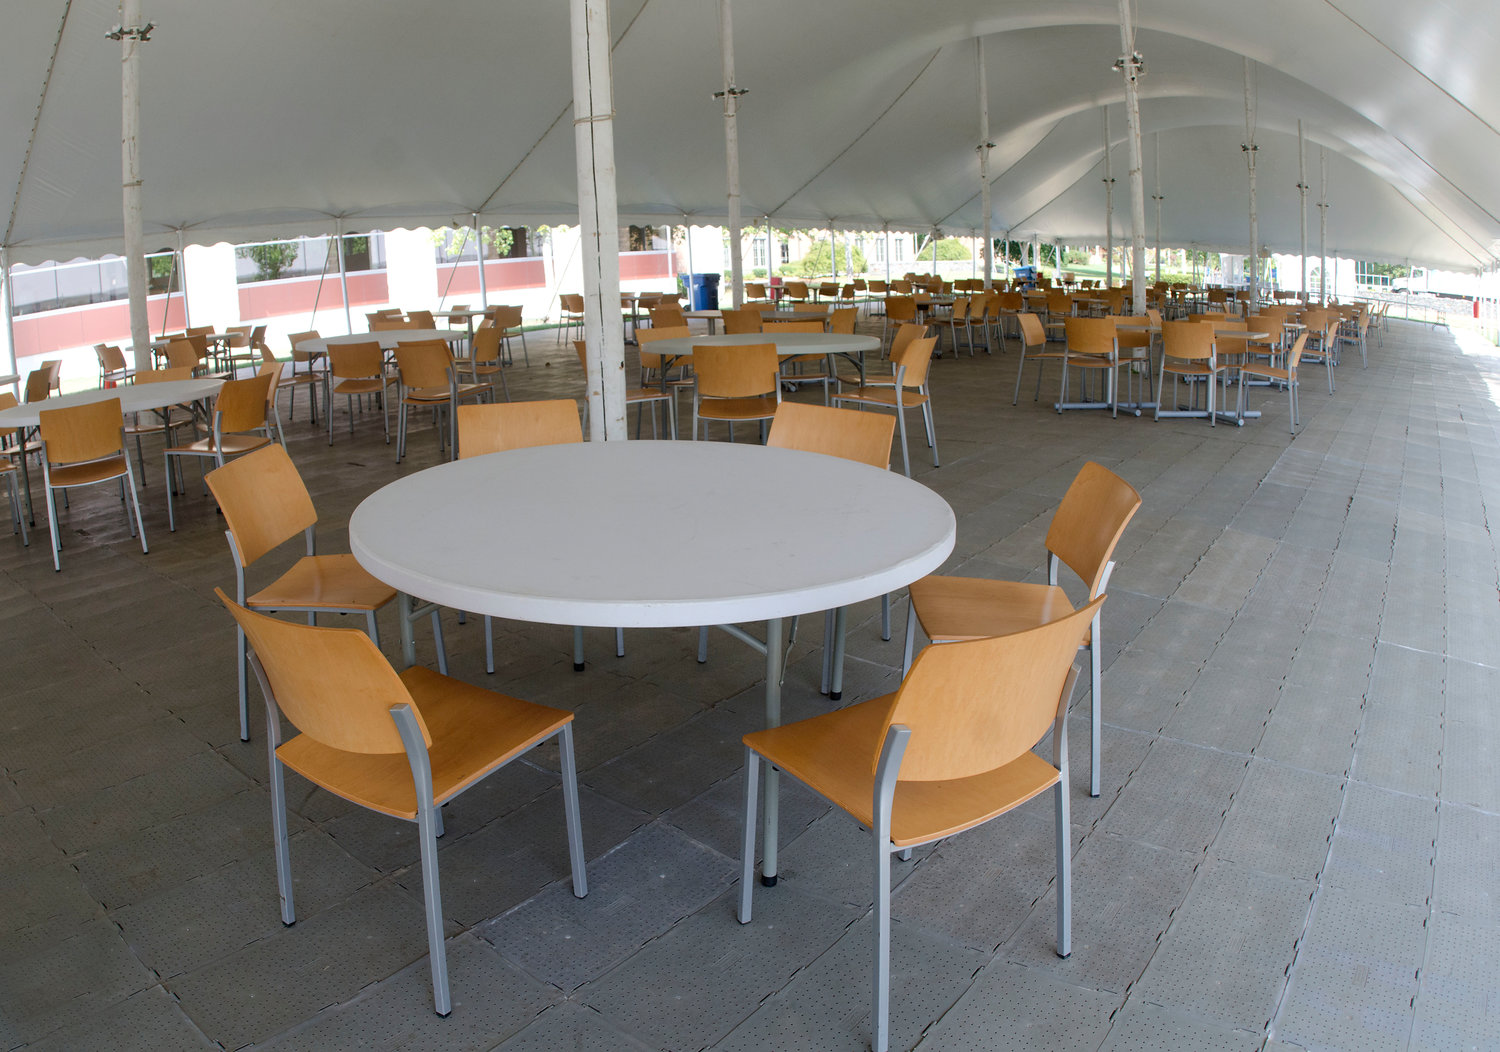 The university added a new outdoor dining tent, with capacity of more than 200 people, to encourage more outdoor dining and to keep people from eating too close to one another.